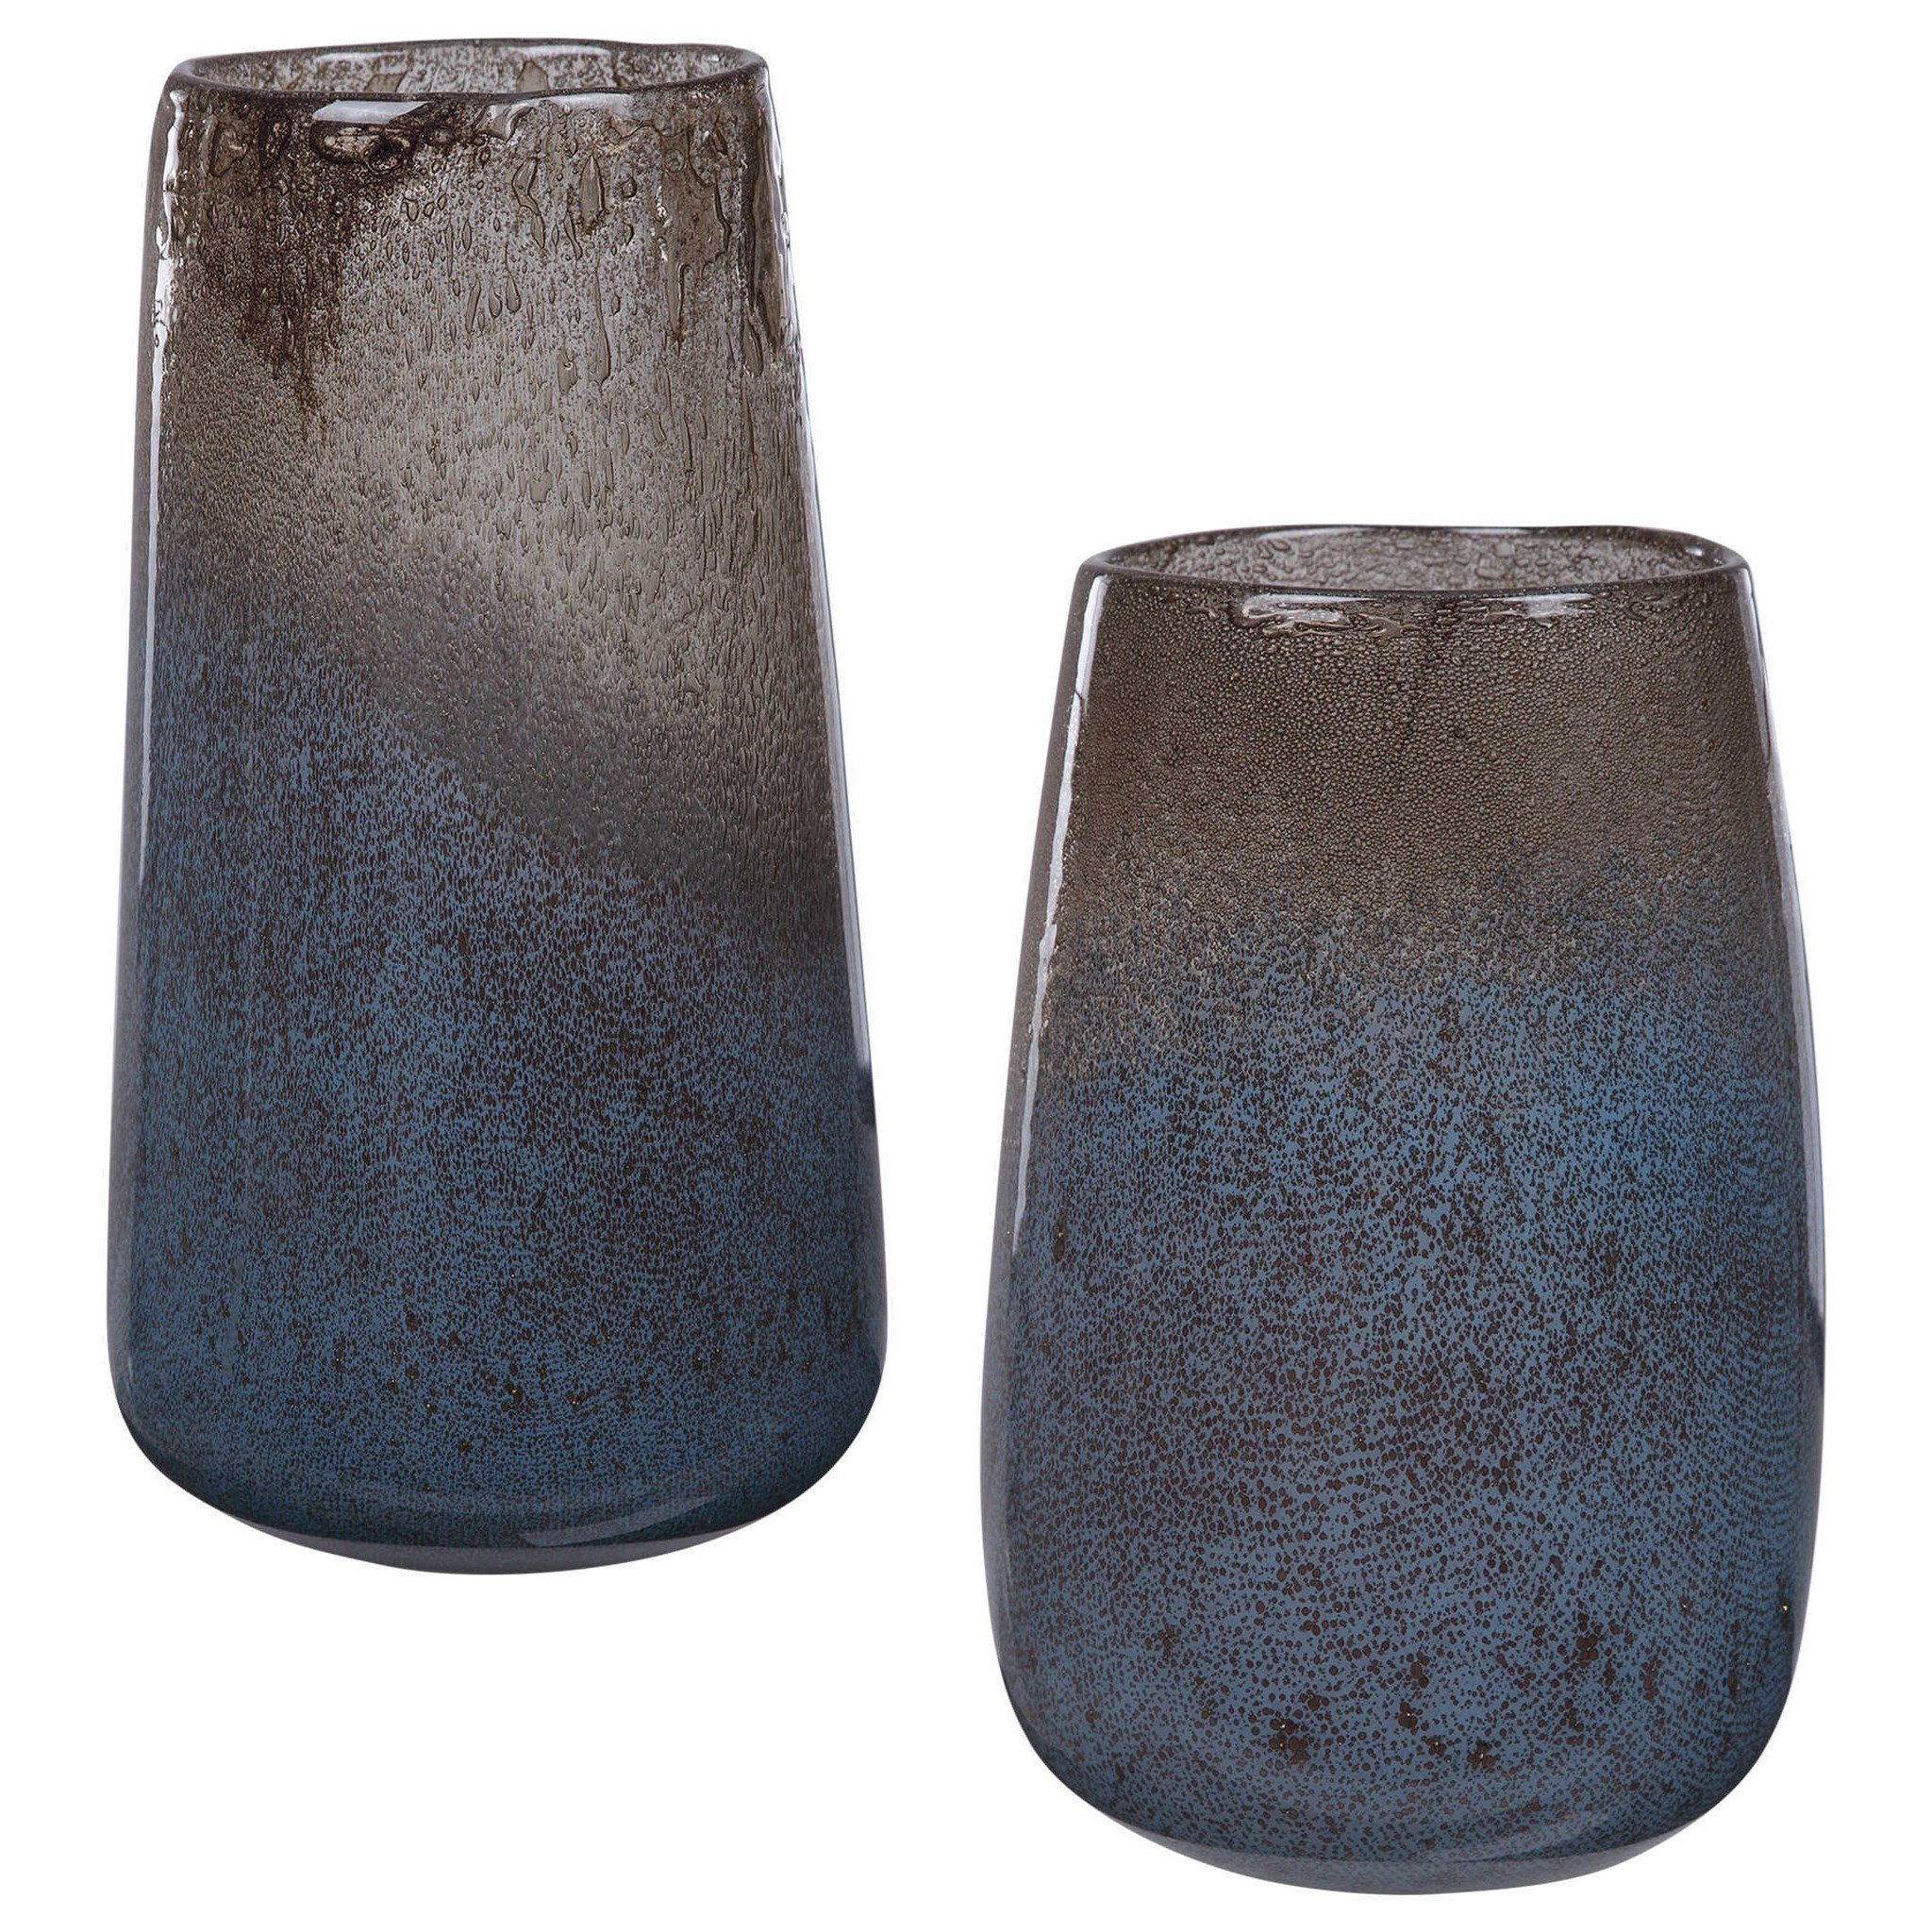 Ione Seeded Glass Vases, S/2